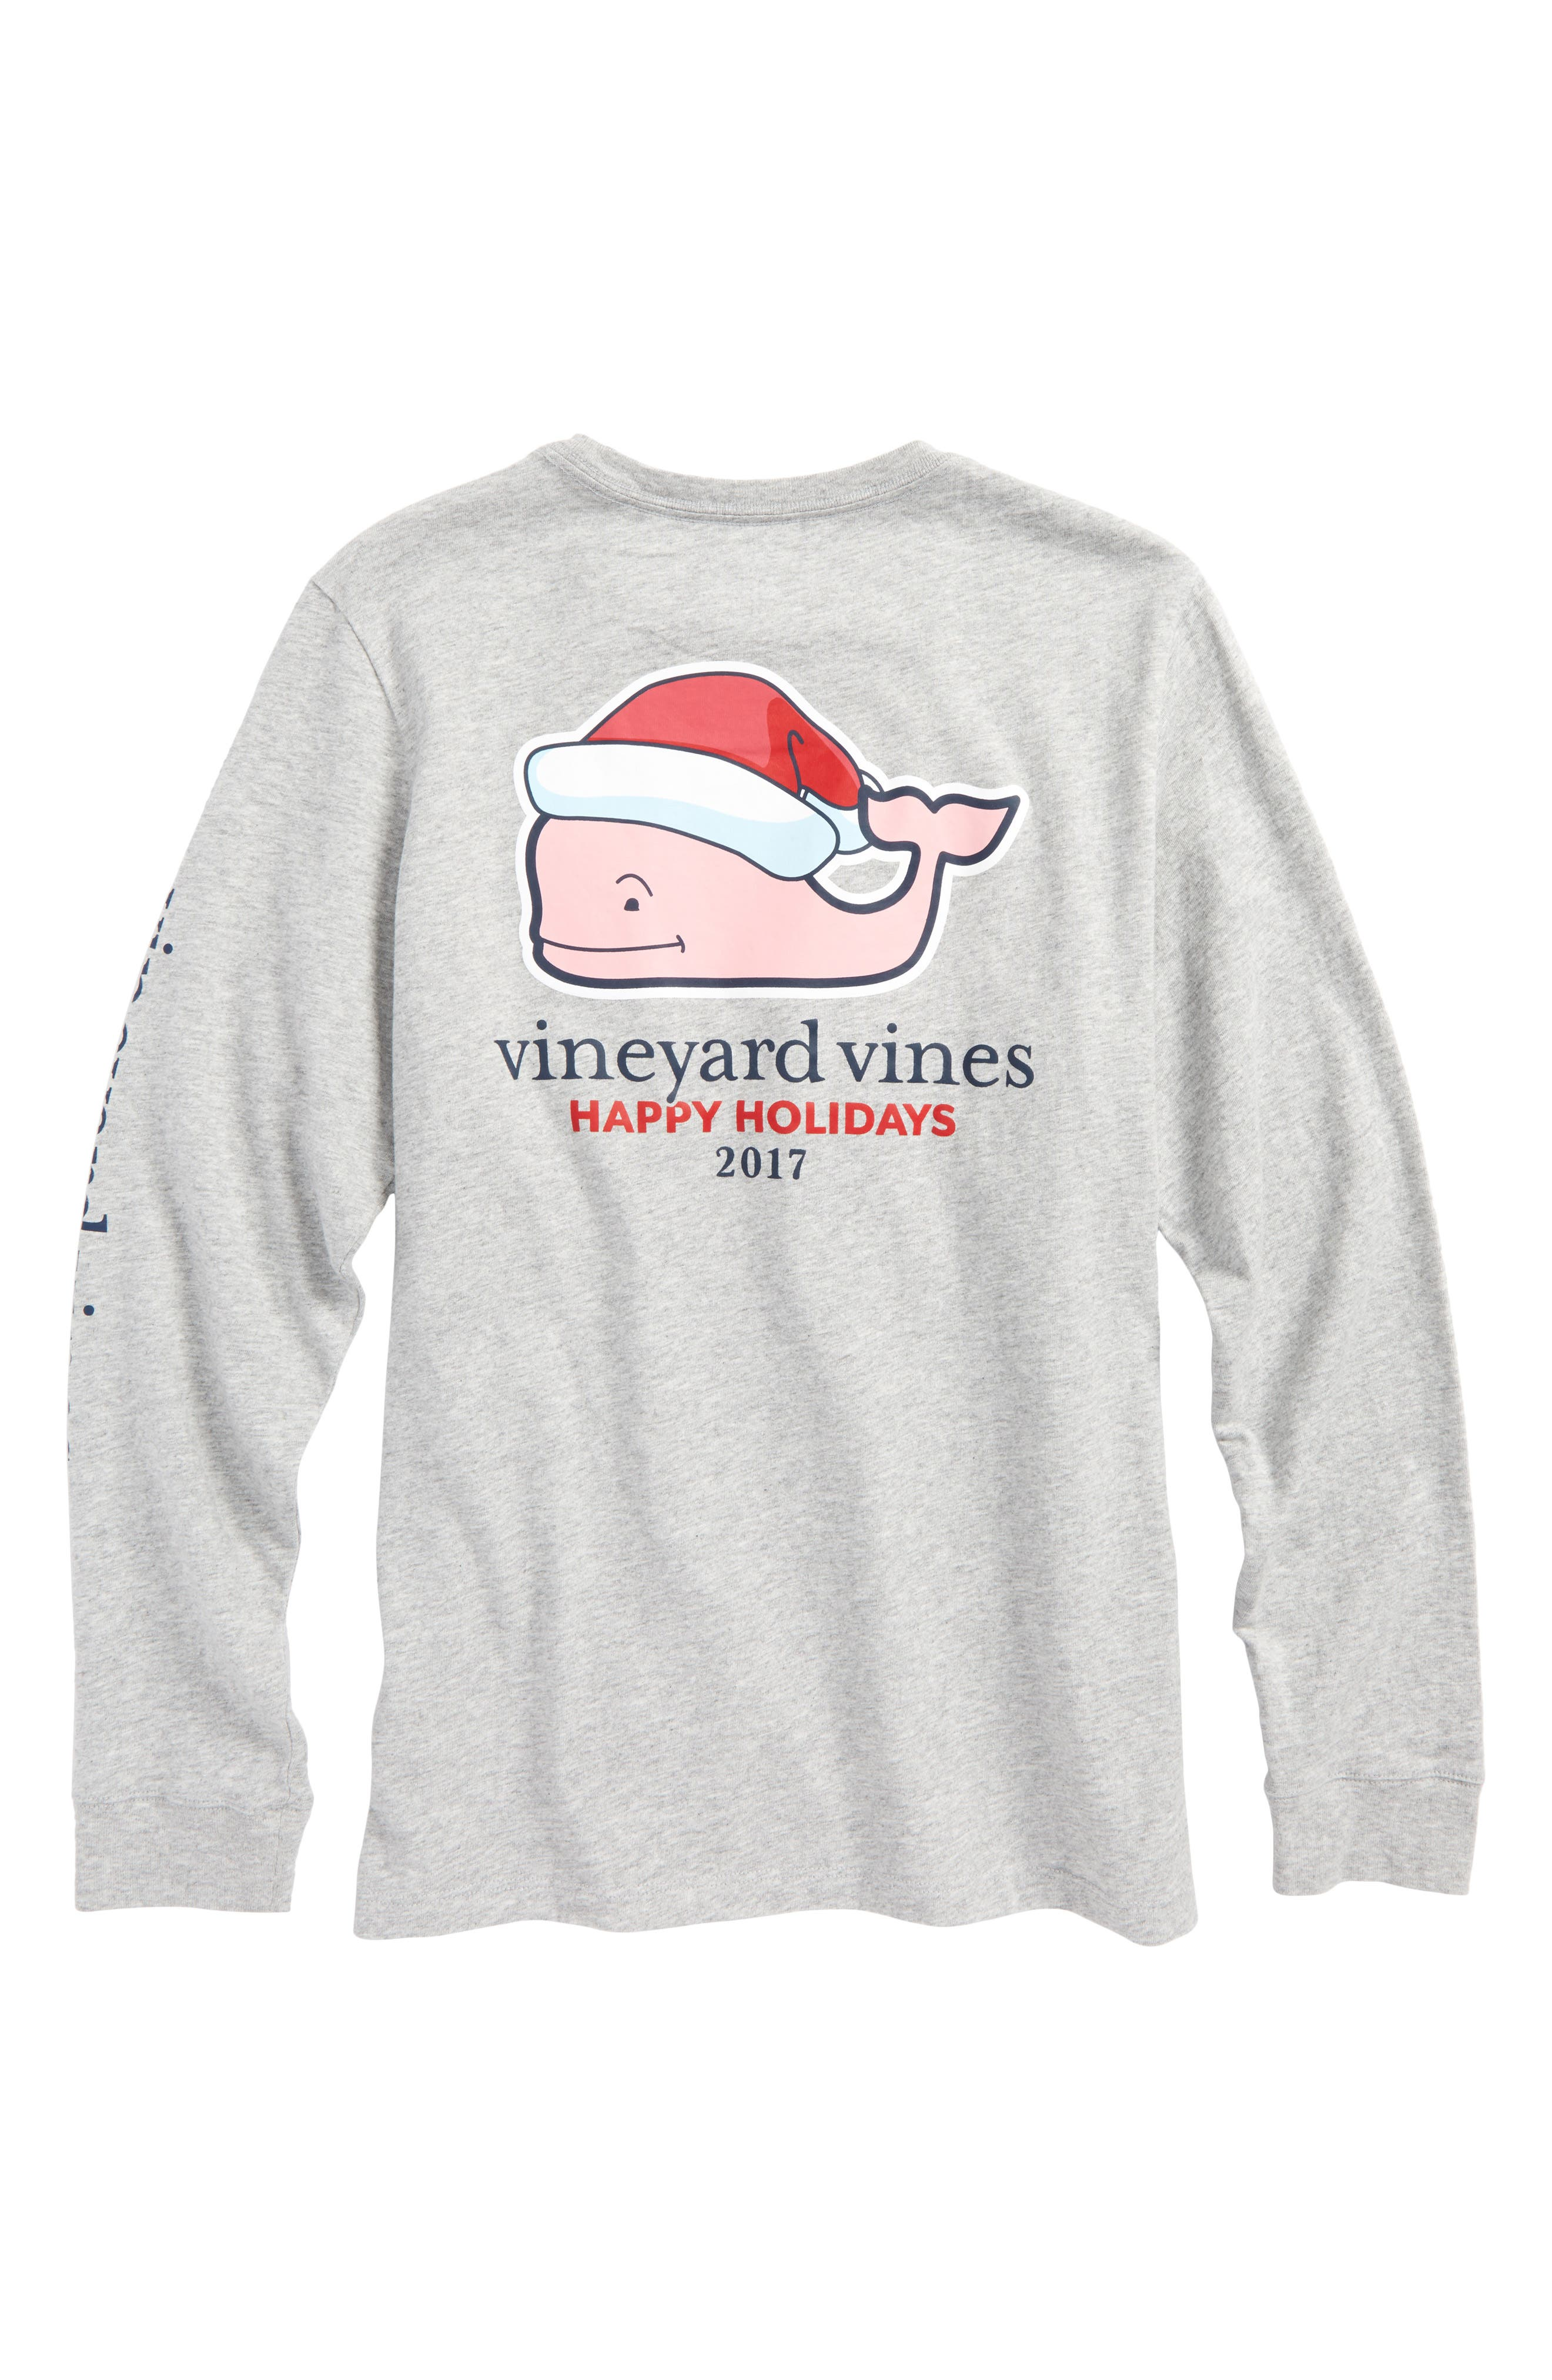 Alternate Image 2  - vineyard vines Santa Whale Happy Holidays 2017 T-Shirt (Big Boys)